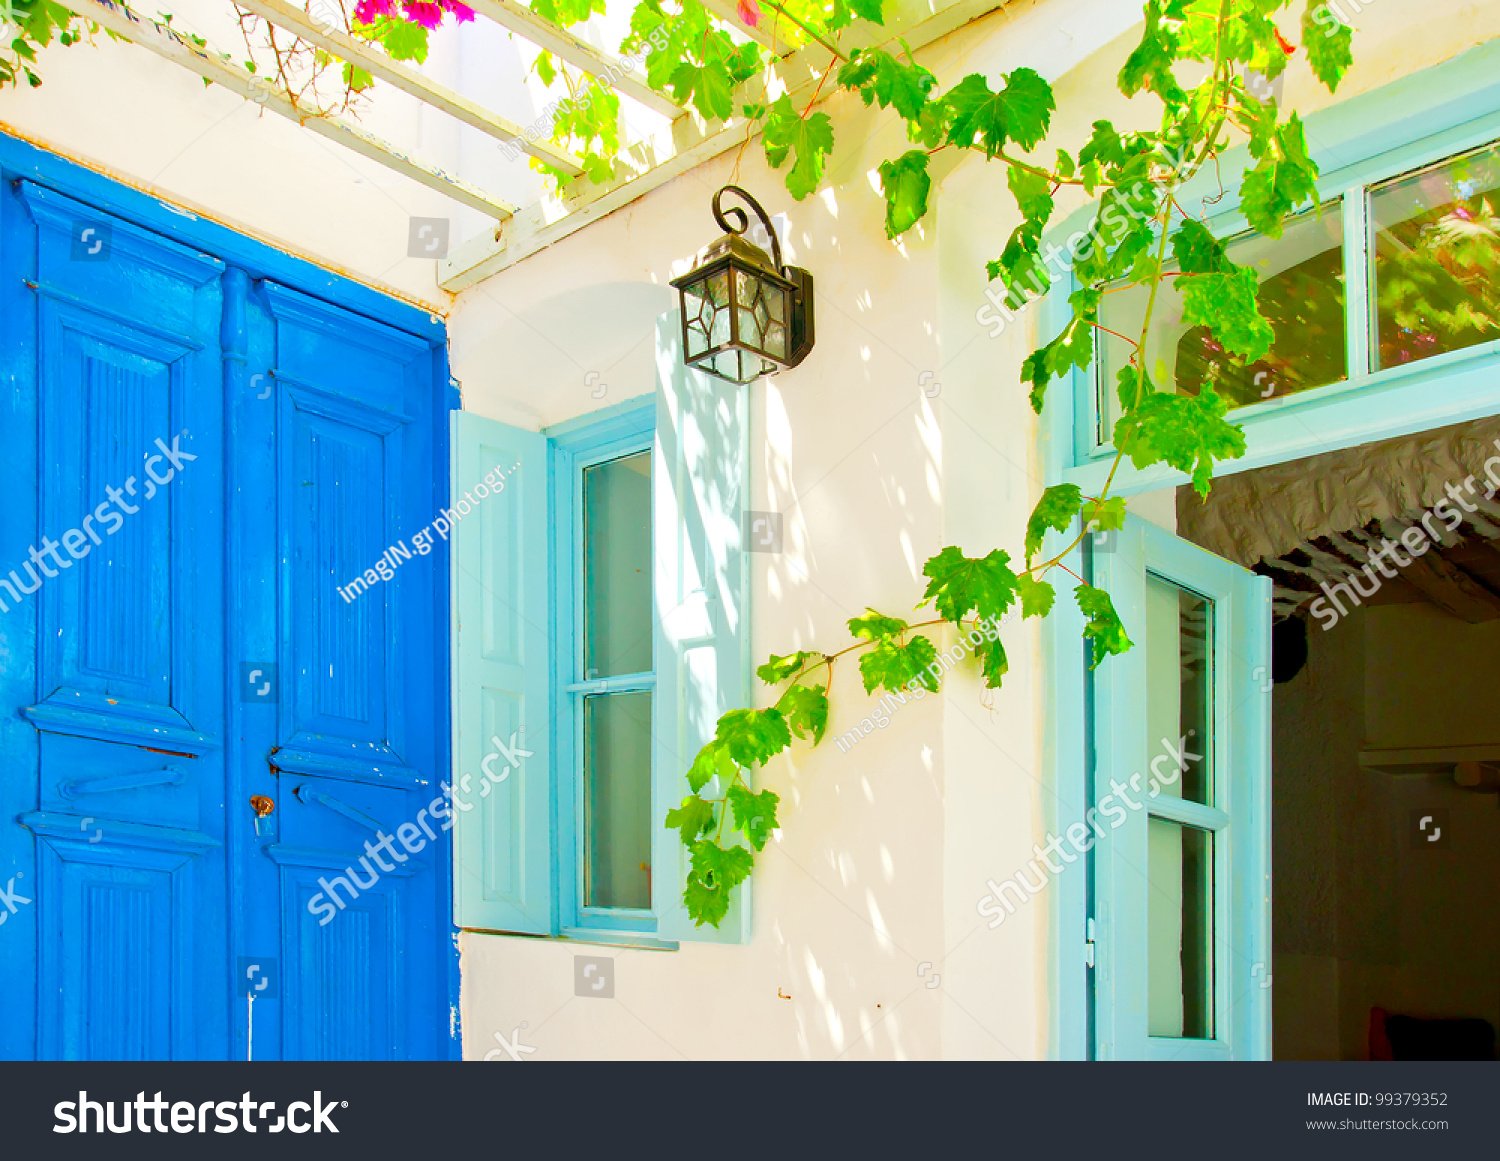 Old beautiful traditional house in chora the capital of amorgos island - A Beautiful Traditional Old House With Pergola And Blue Colored Doors And Windows In Chora The Preview Save To A Lightbox